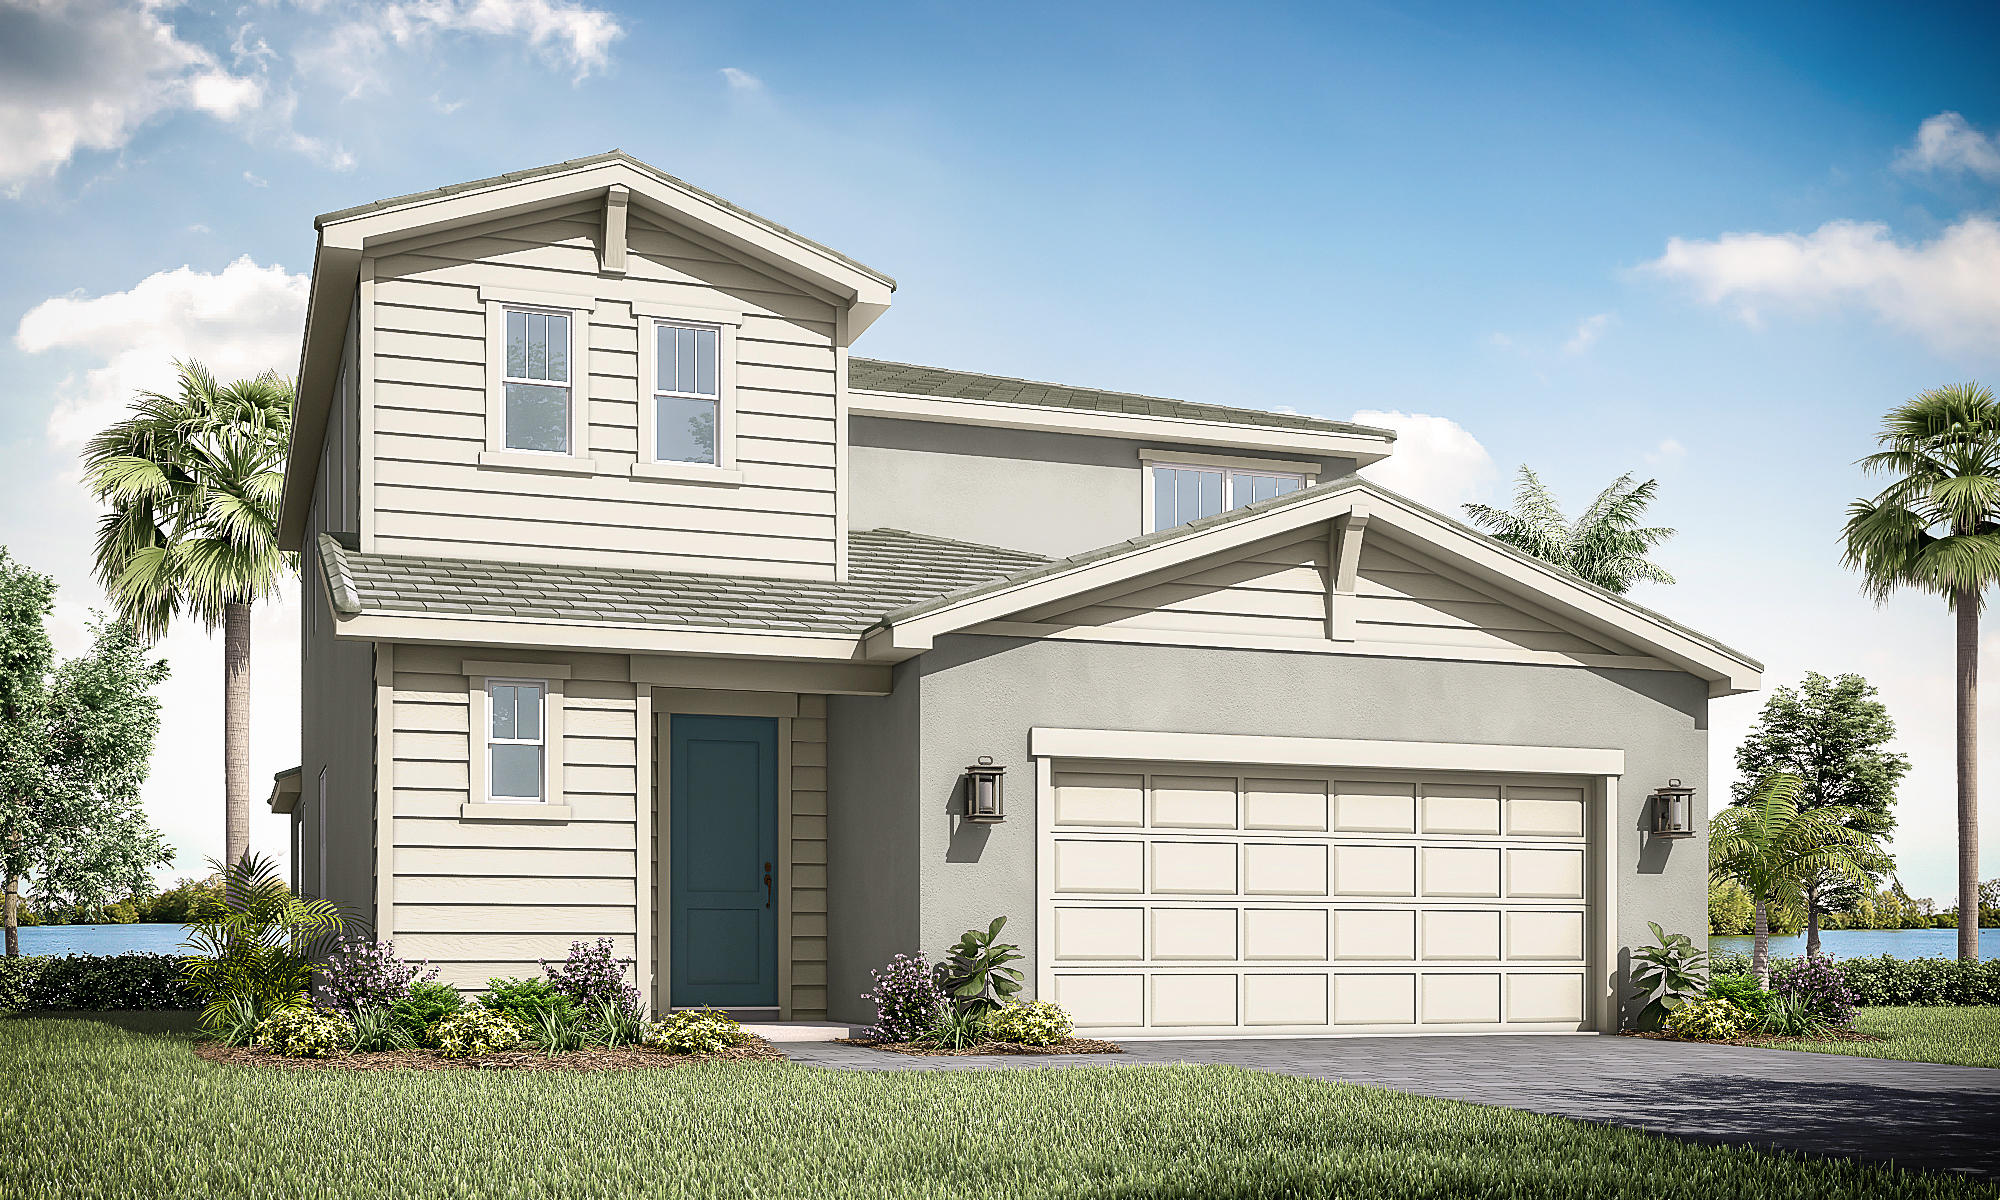 6673  Pointe Of Woods Drive Lot 24 For Sale 10686721, FL